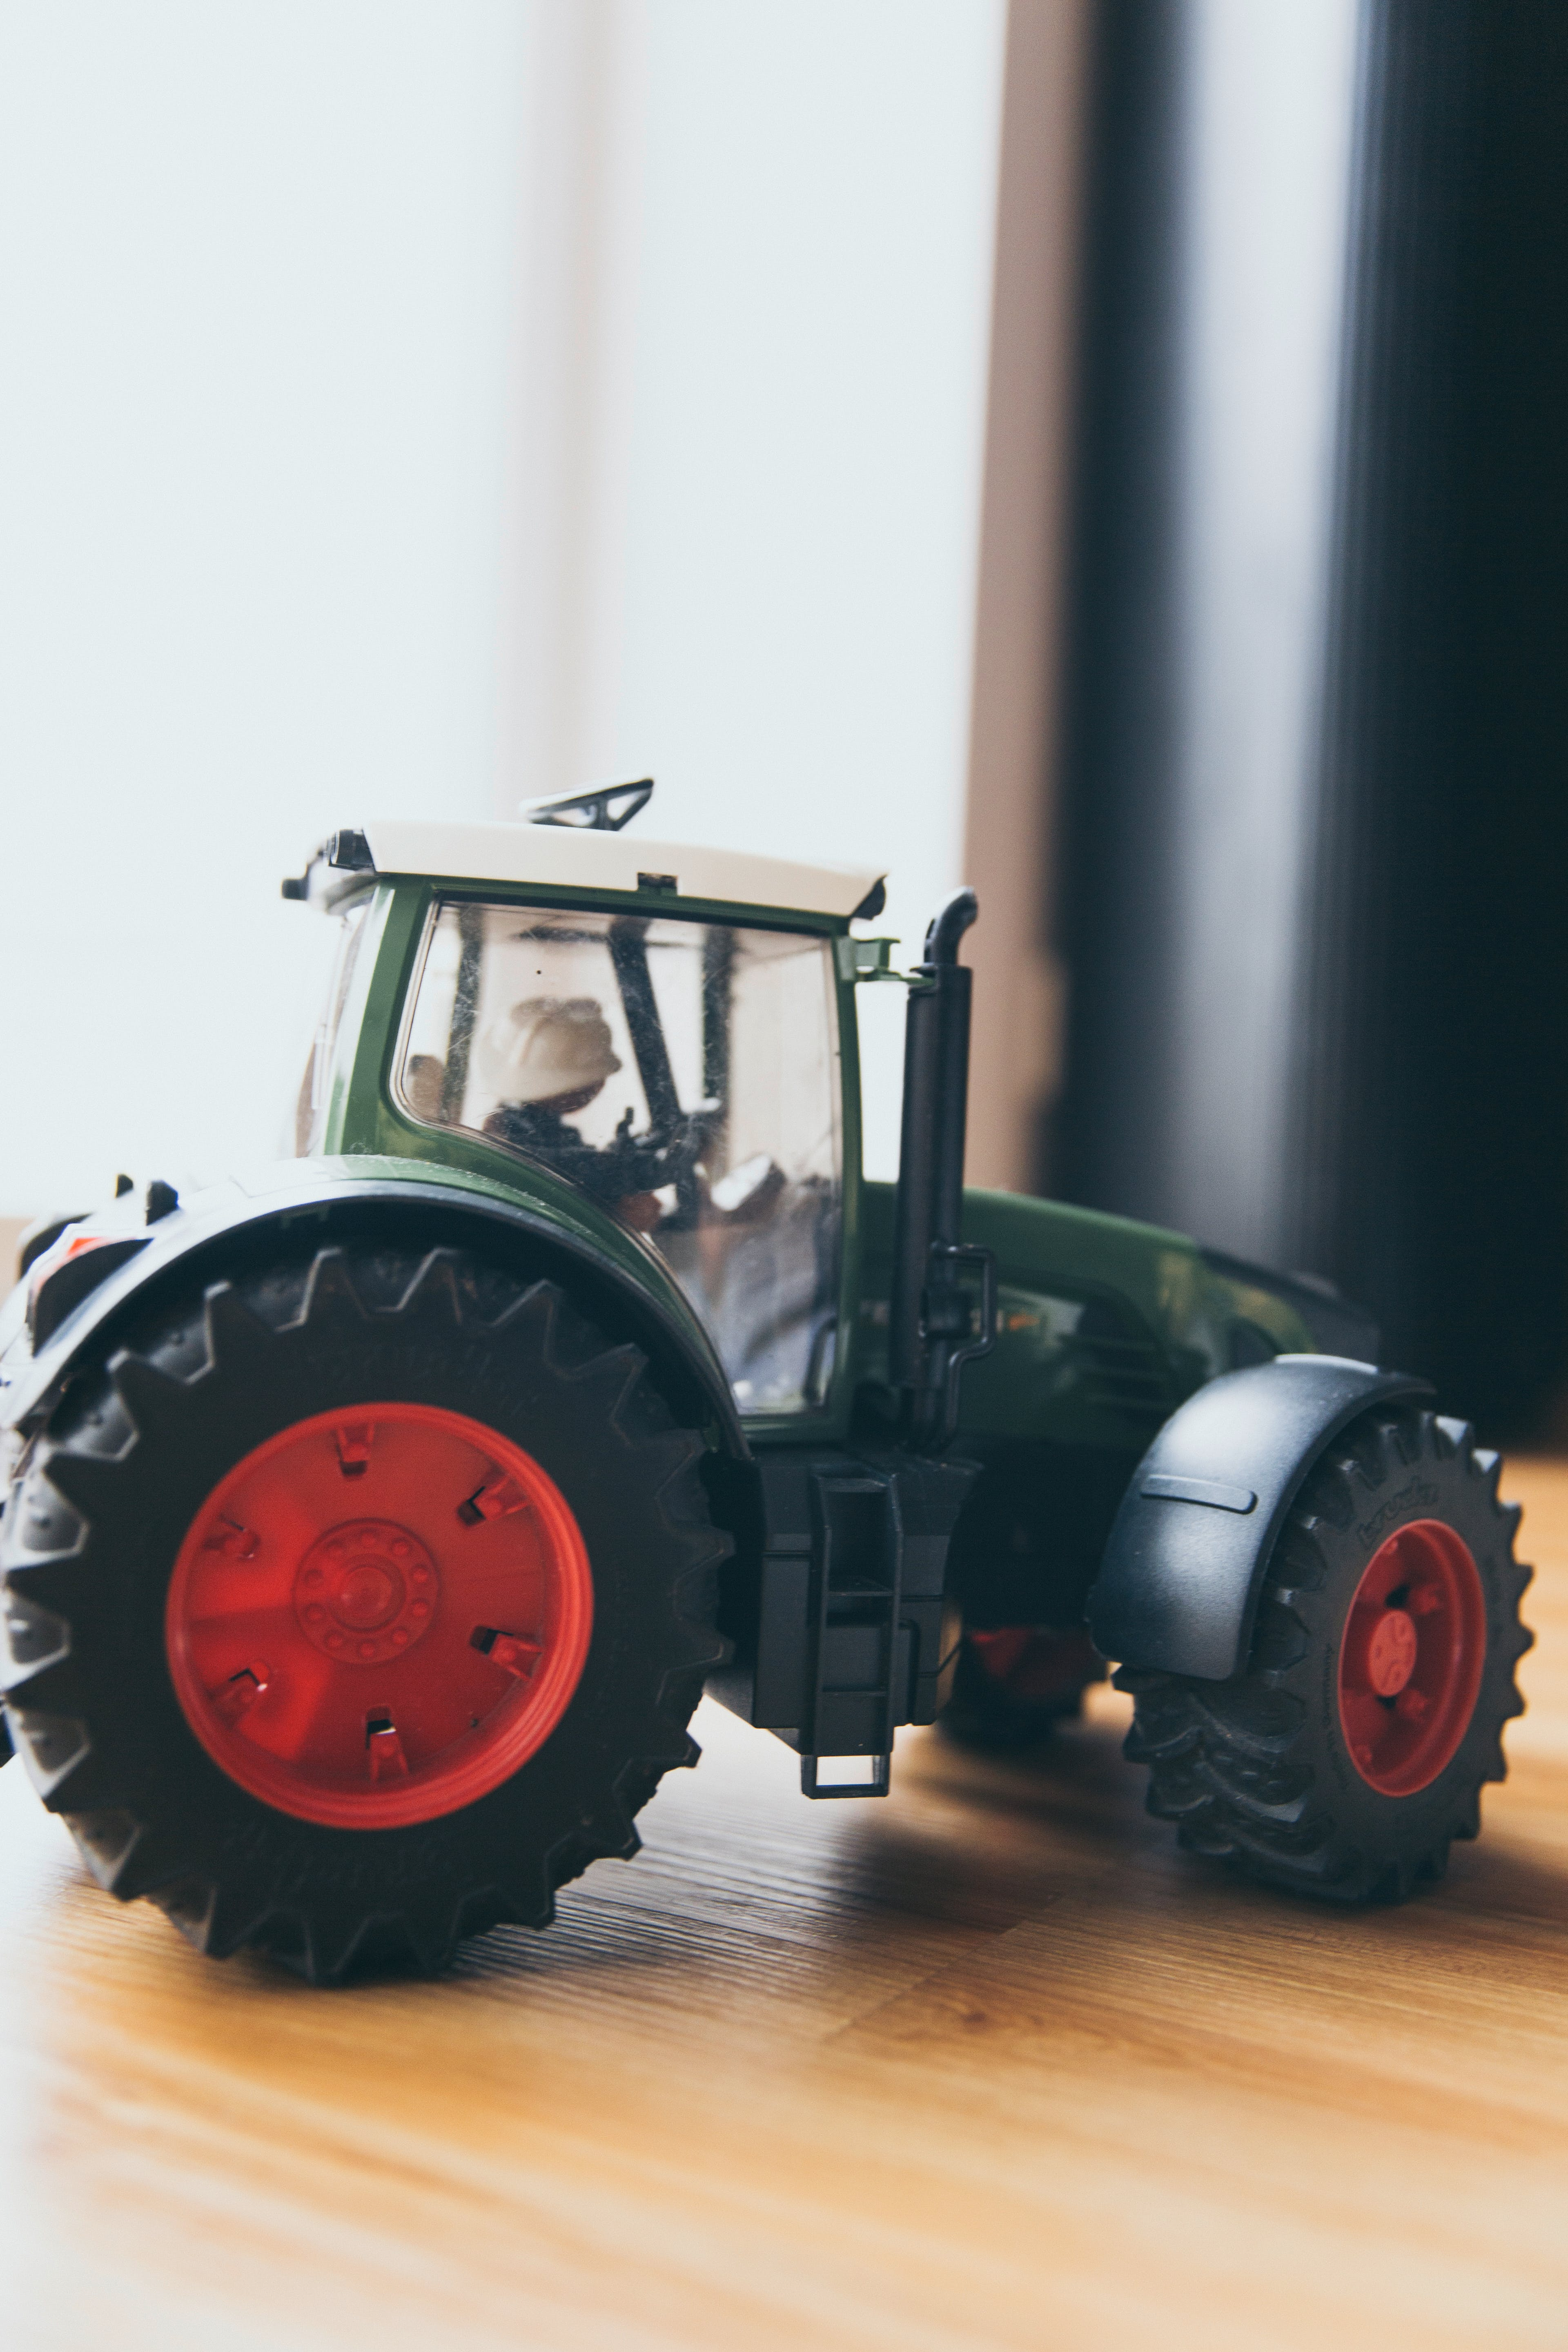 Black and Green Farm Tractor Toy on Brown Wooden Table Beside Window